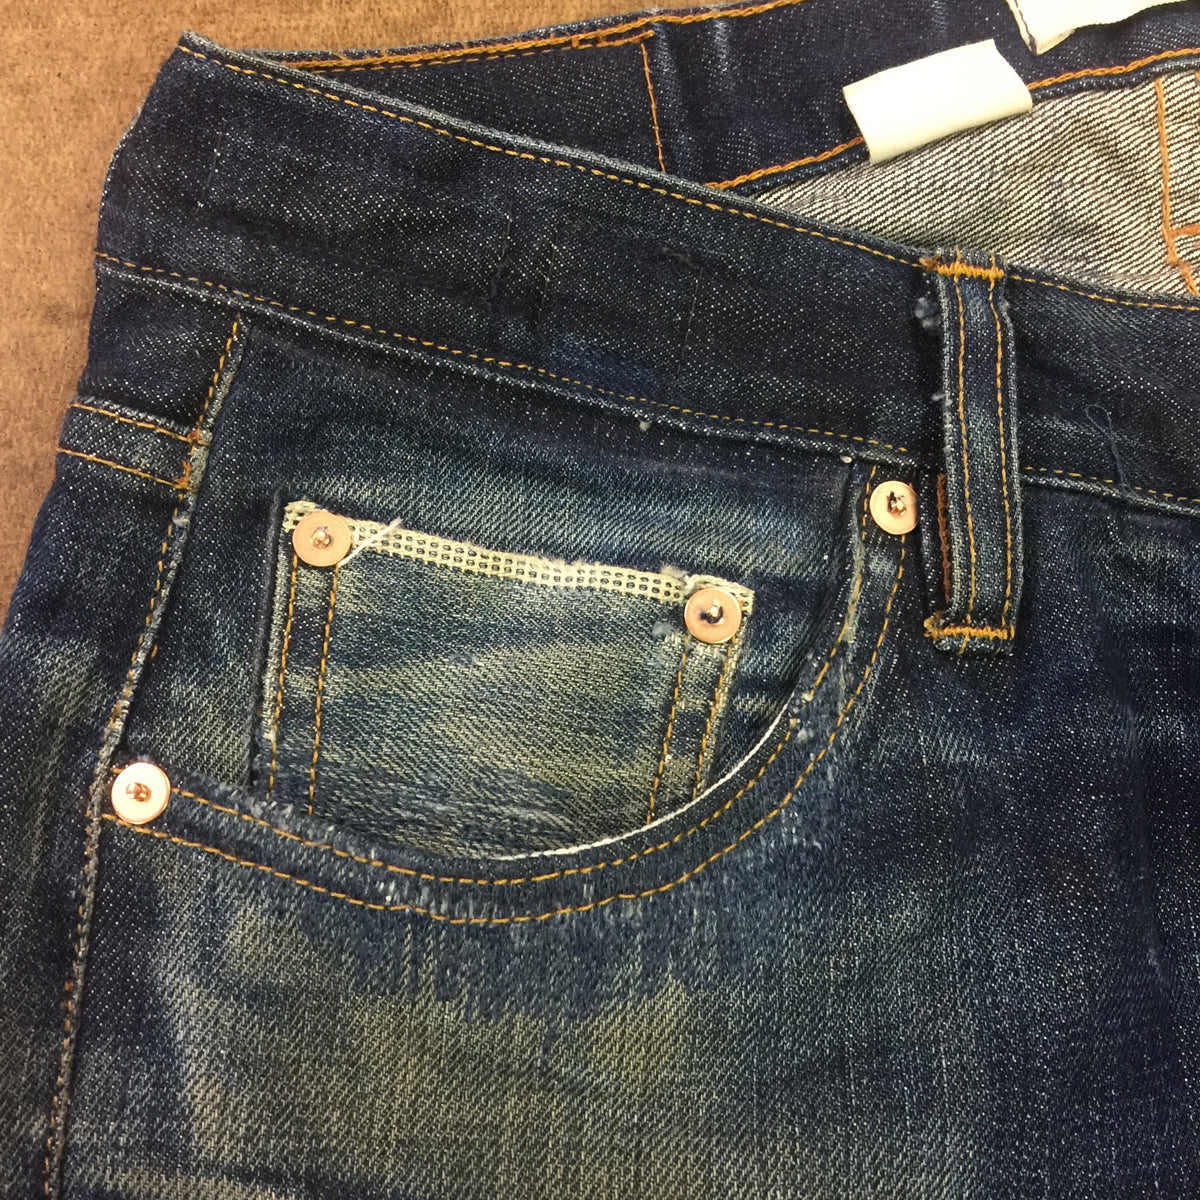 DENIM Repair. Pocket Repair